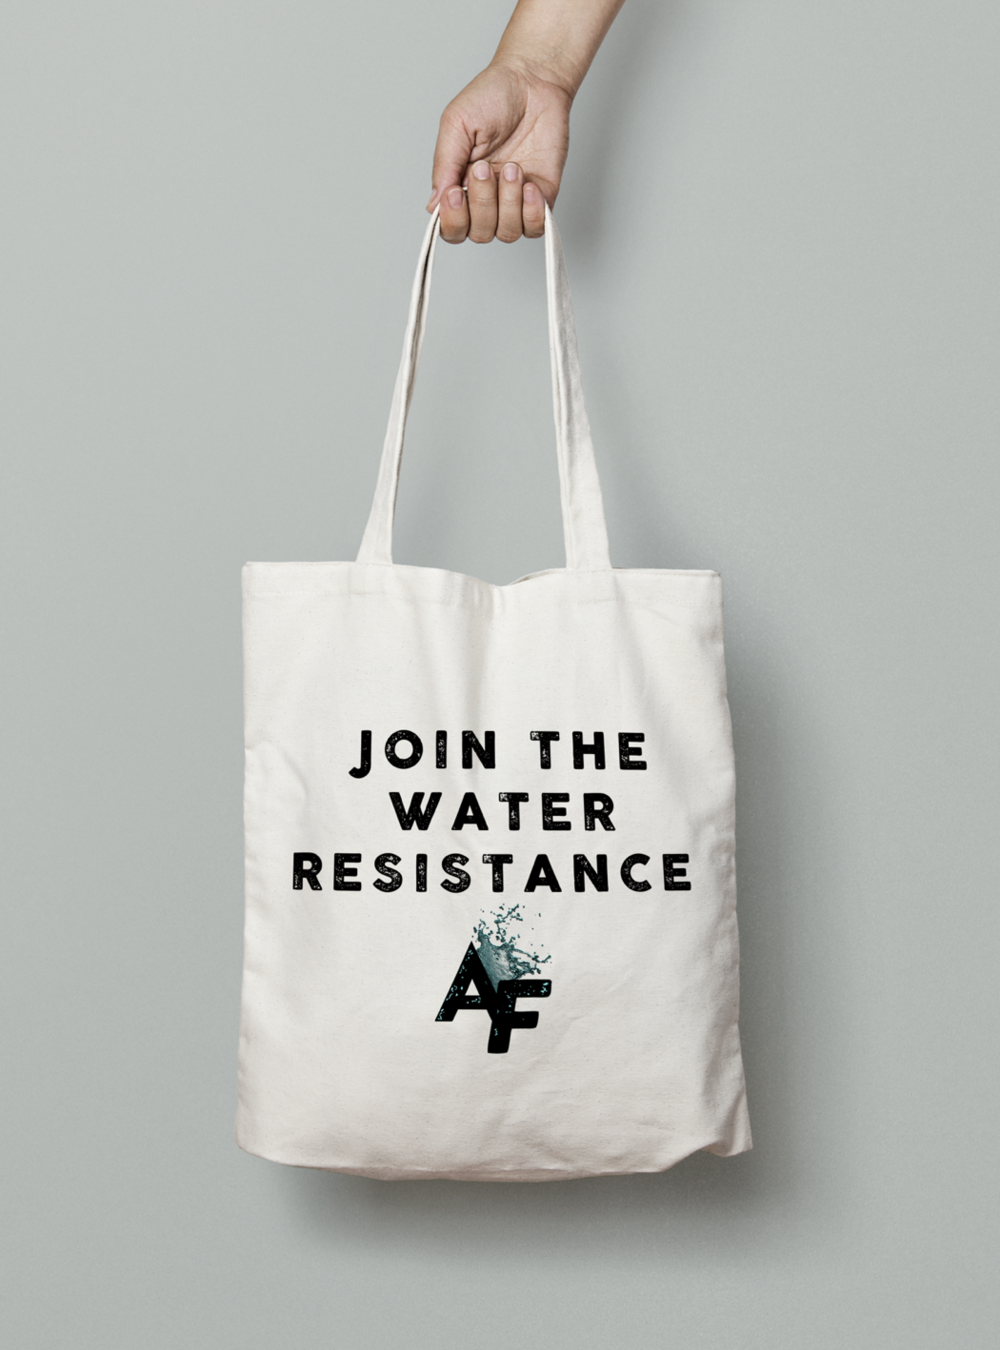 Bags and various merch